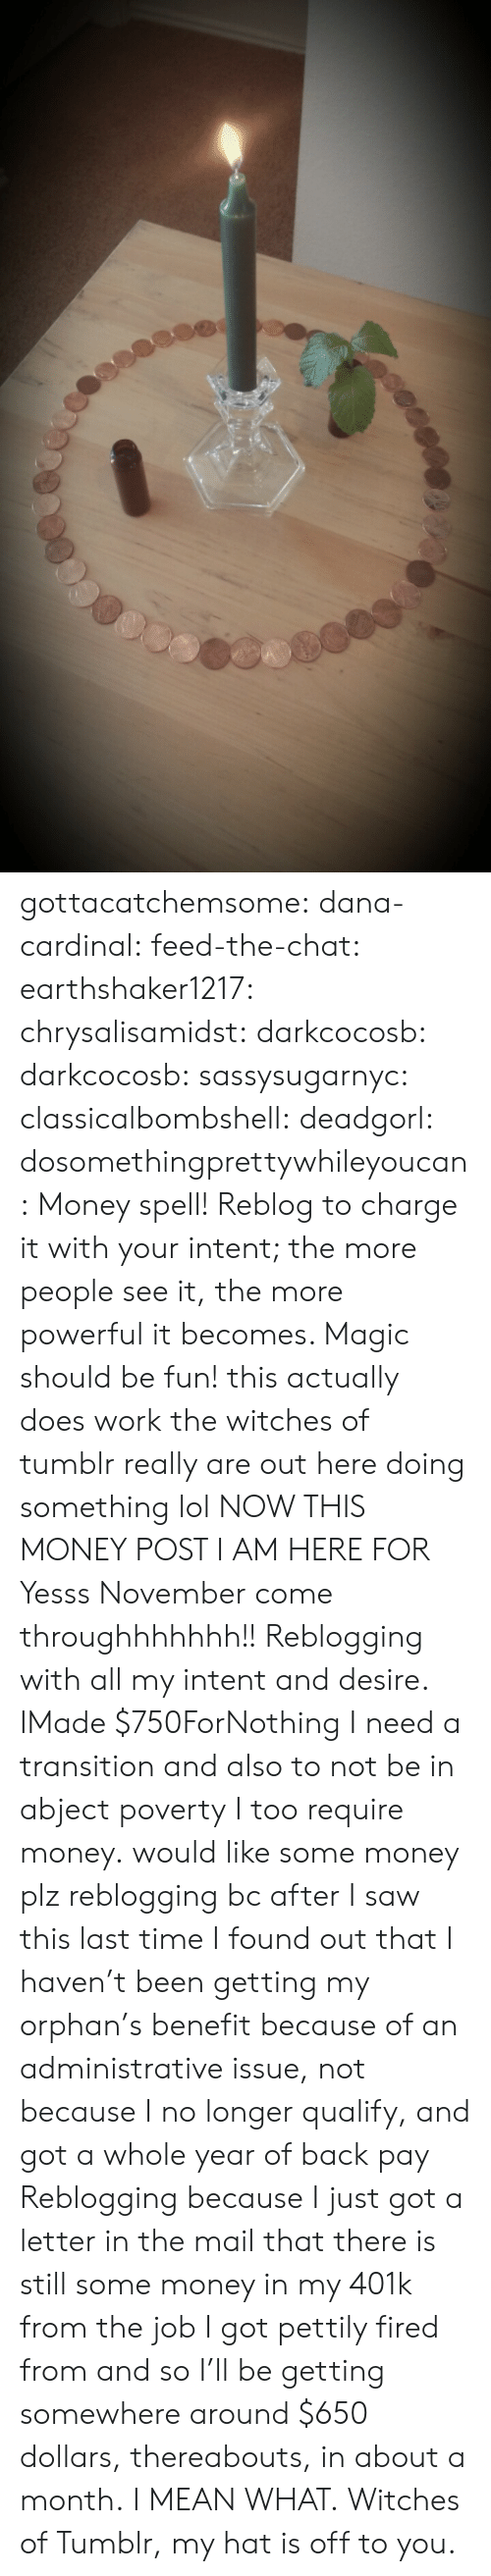 Lol, Money, and Saw: gottacatchemsome: dana-cardinal:  feed-the-chat:  earthshaker1217:  chrysalisamidst:  darkcocosb:  darkcocosb:  sassysugarnyc:  classicalbombshell:  deadgorl:  dosomethingprettywhileyoucan:  Money spell! Reblog to charge it with your intent; the more people see it, the more powerful it becomes. Magic should be fun!  this actually does work the witches of tumblr really are out here doing something lol  NOW THIS MONEY POST I AM HERE FOR  Yesss November come throughhhhhhh!!  Reblogging with all my intent and desire.  IMade $750ForNothing  I need a transition and also to not be in abject poverty  I too require money.  would like some money plz  reblogging bc after I saw this last time I found out that I haven't been getting my orphan's benefit because of an administrative issue, not because I no longer qualify, and got a whole year of back pay  Reblogging because I just got a letter in the mail that there is still some money in my 401k from the job I got pettily fired from and so I'll be getting somewhere around $650 dollars, thereabouts, in about a month. I MEAN WHAT. Witches of Tumblr, my hat is off to you.